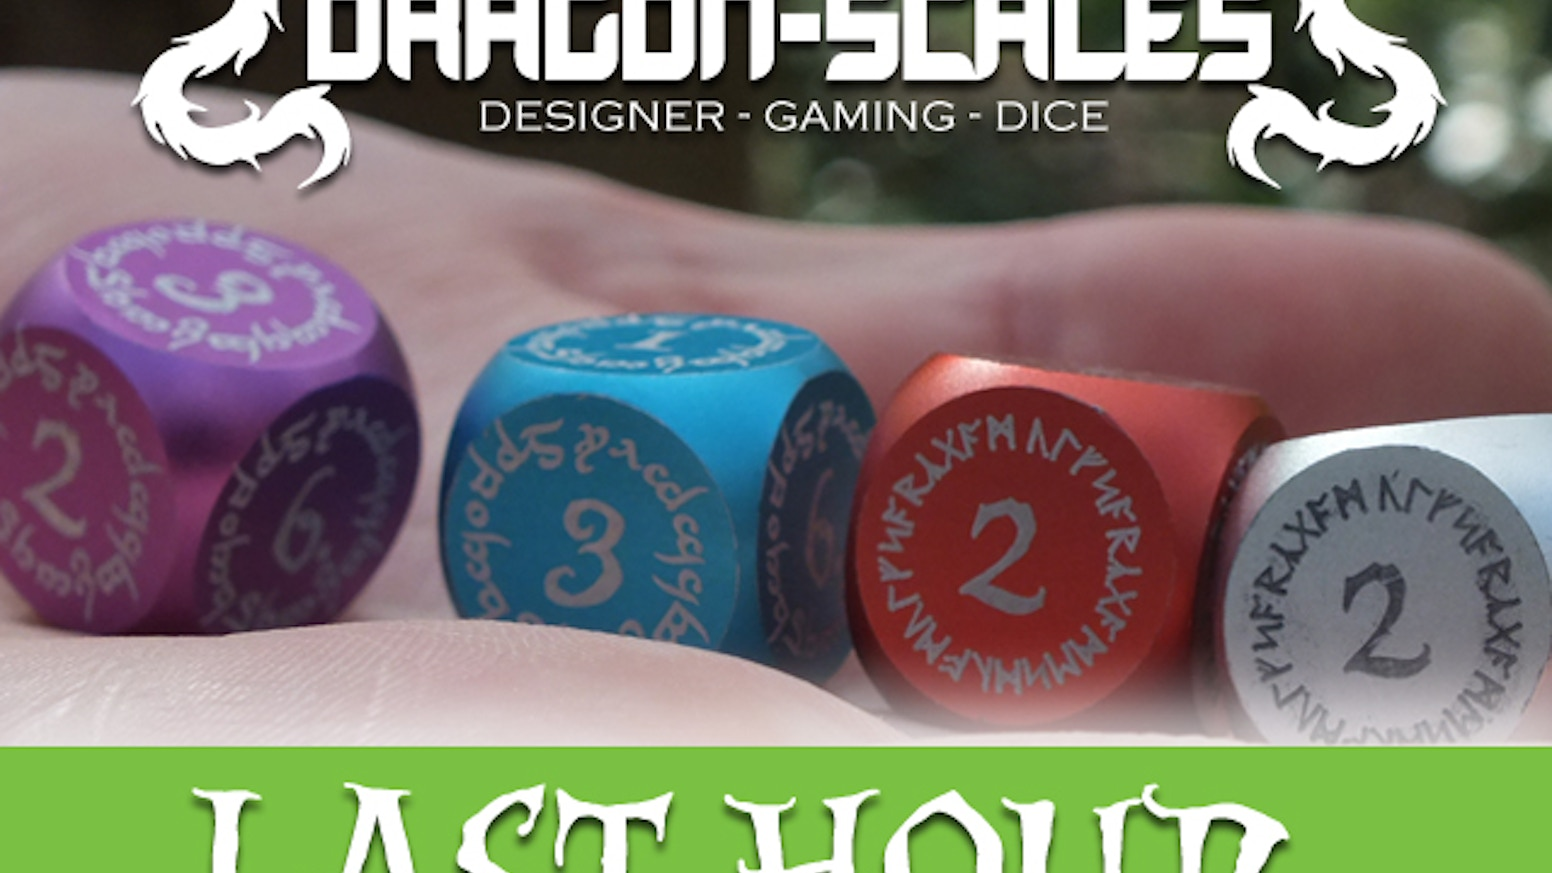 Fantasy themed dice for miniature and role-playing games. Precision cut by CNC machines to give you the best metal dice possible.